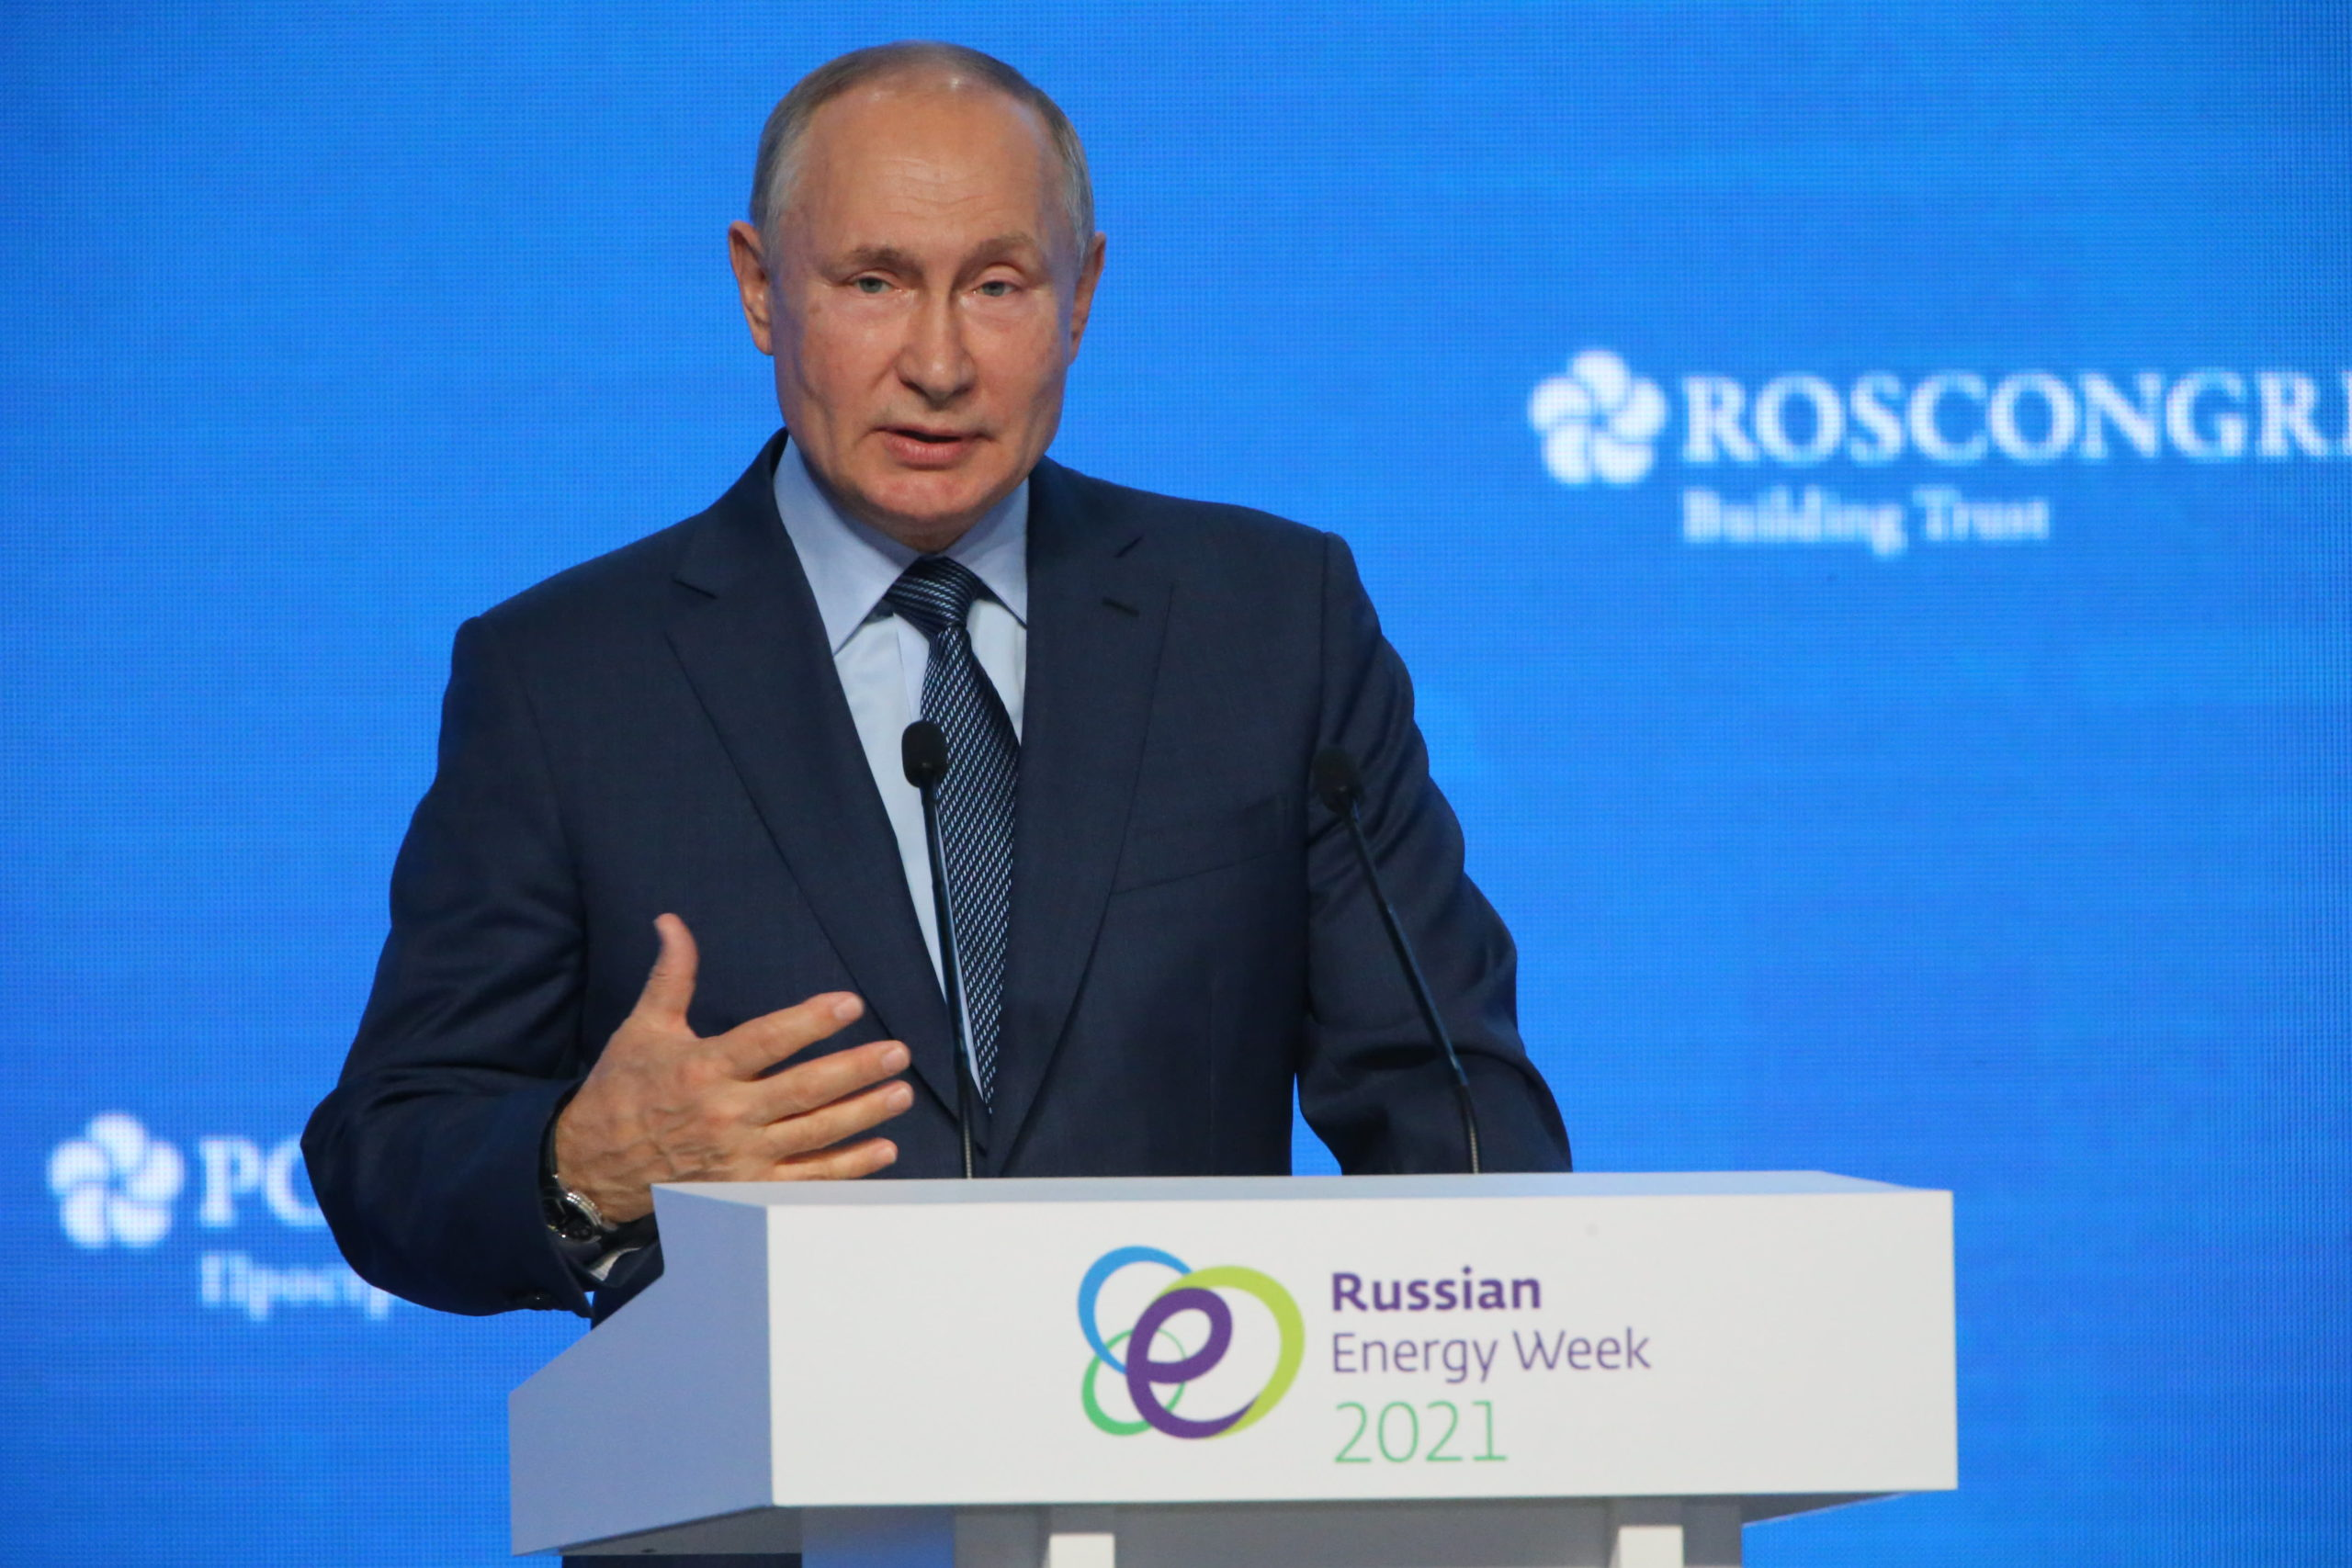 Russia's Putin says crypto has 'value' — but maybe not for trading oil